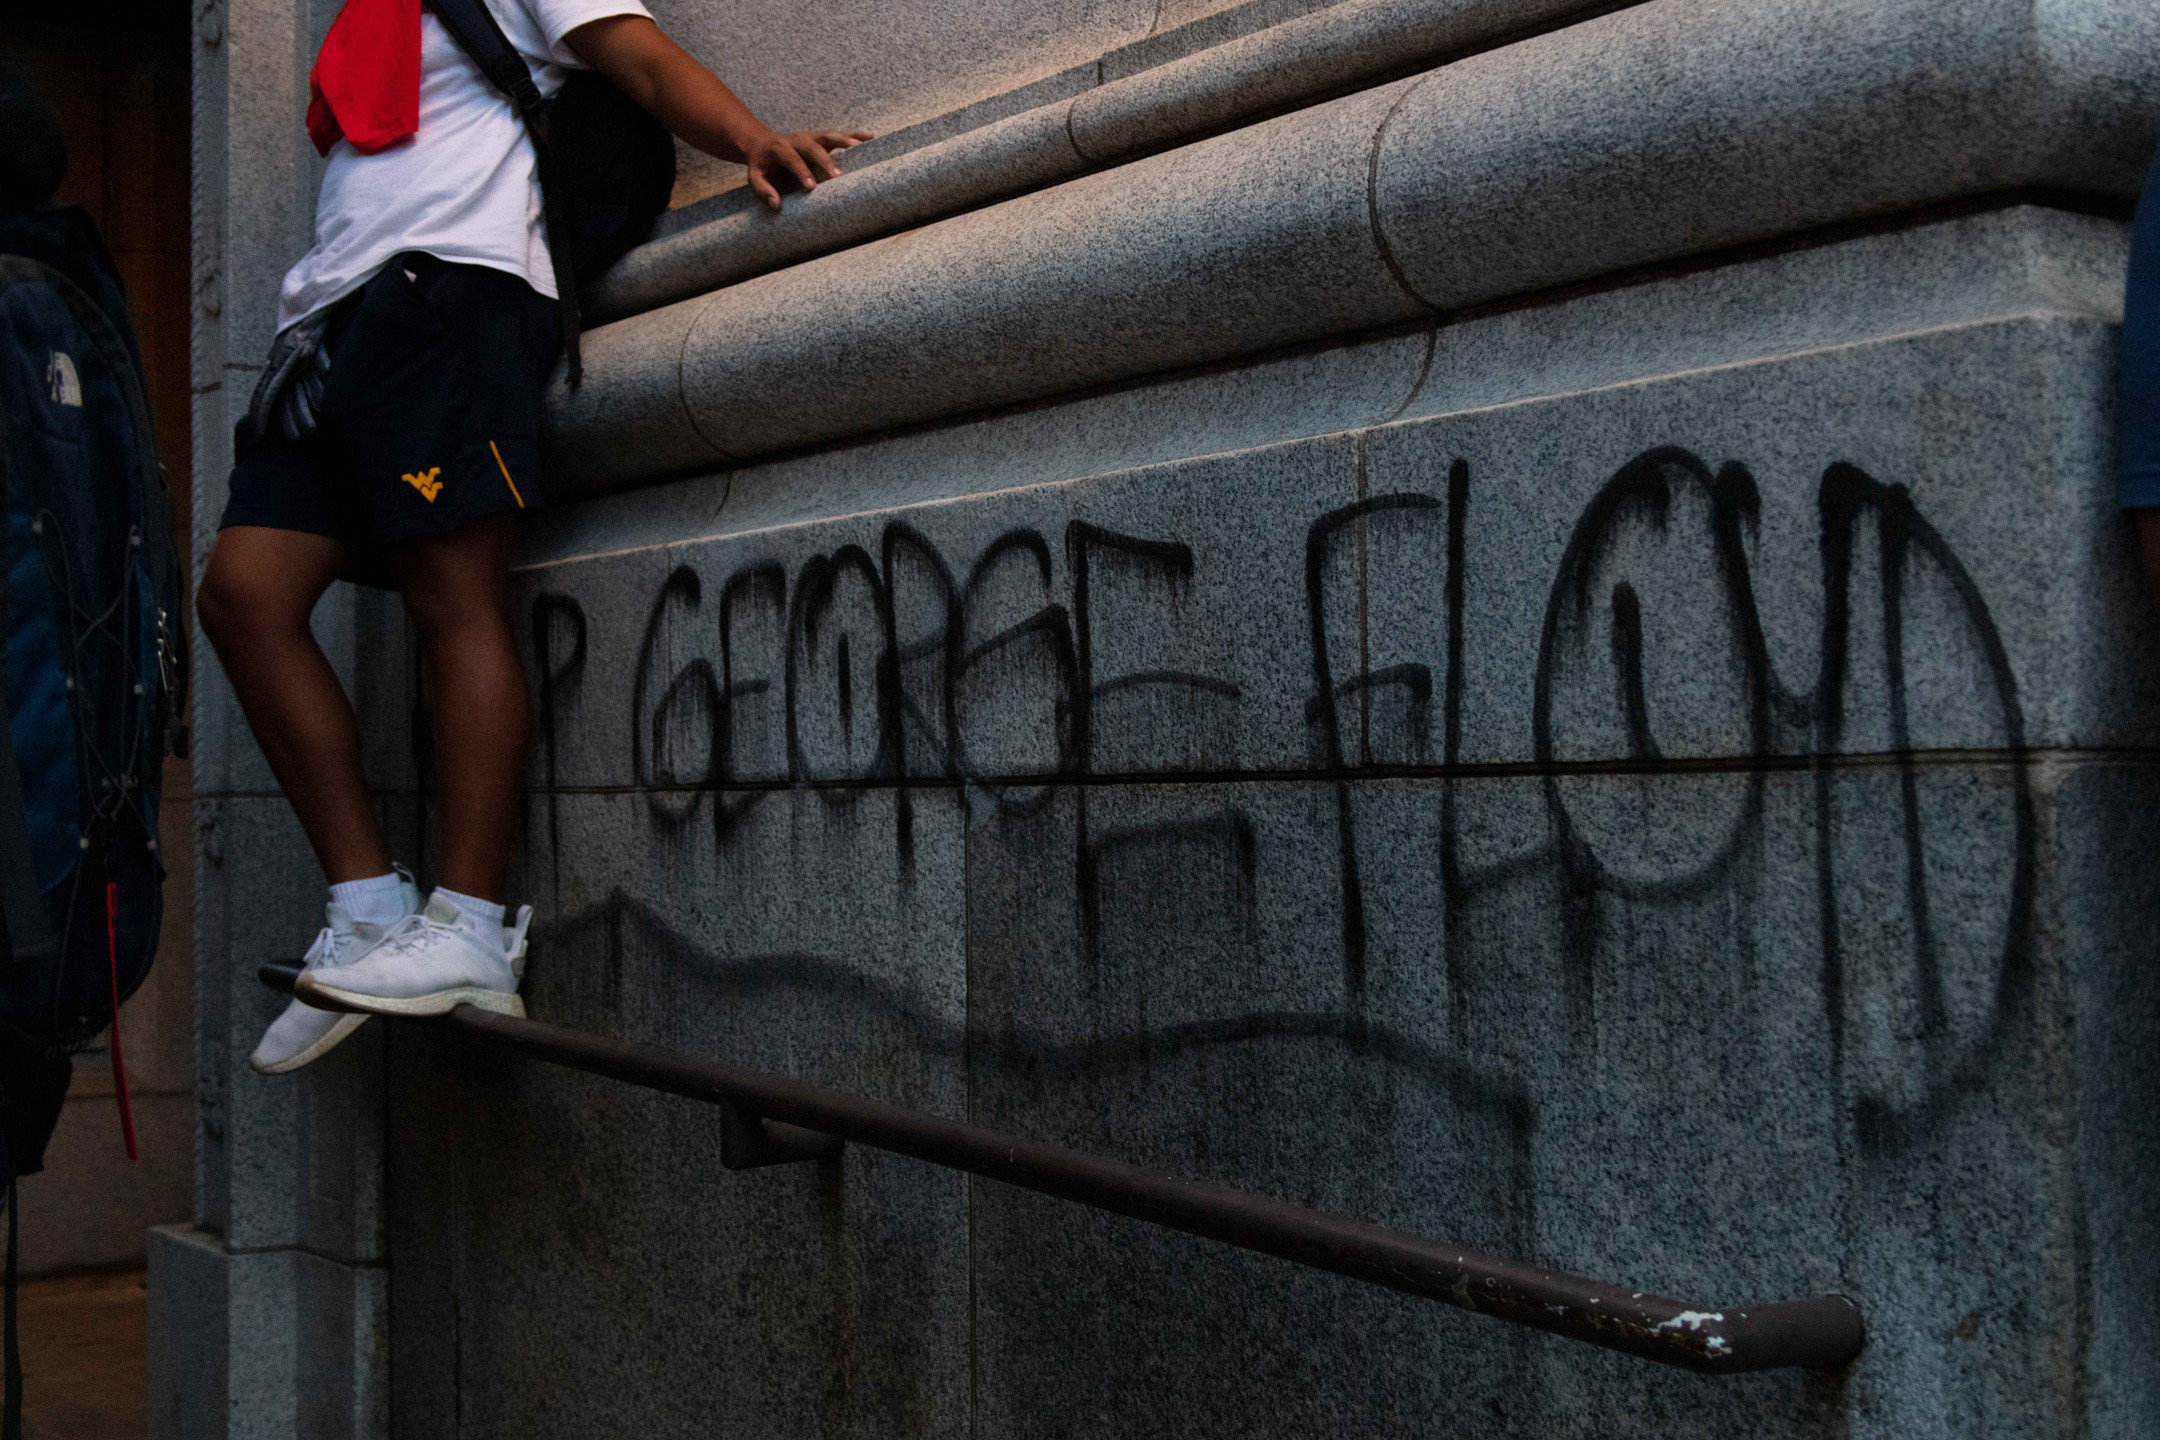 A protester leans against a building where demonstrators spray painted the name of George Floyd.